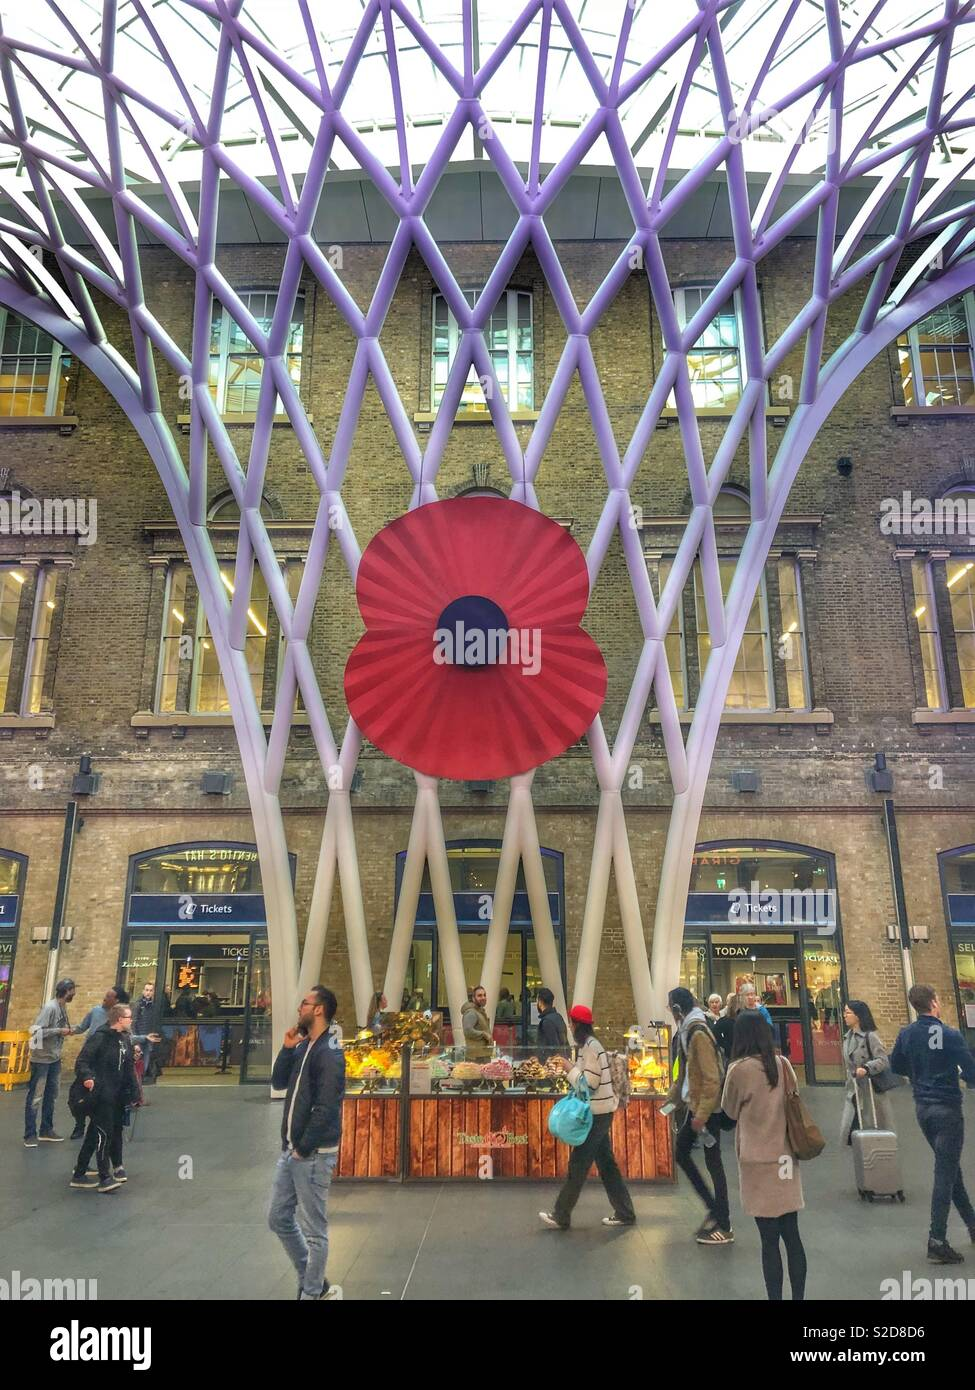 Remembrance Day poppy installation for the armistice centenary in kings cross st Pancras train station, london, england, britain - Stock Image